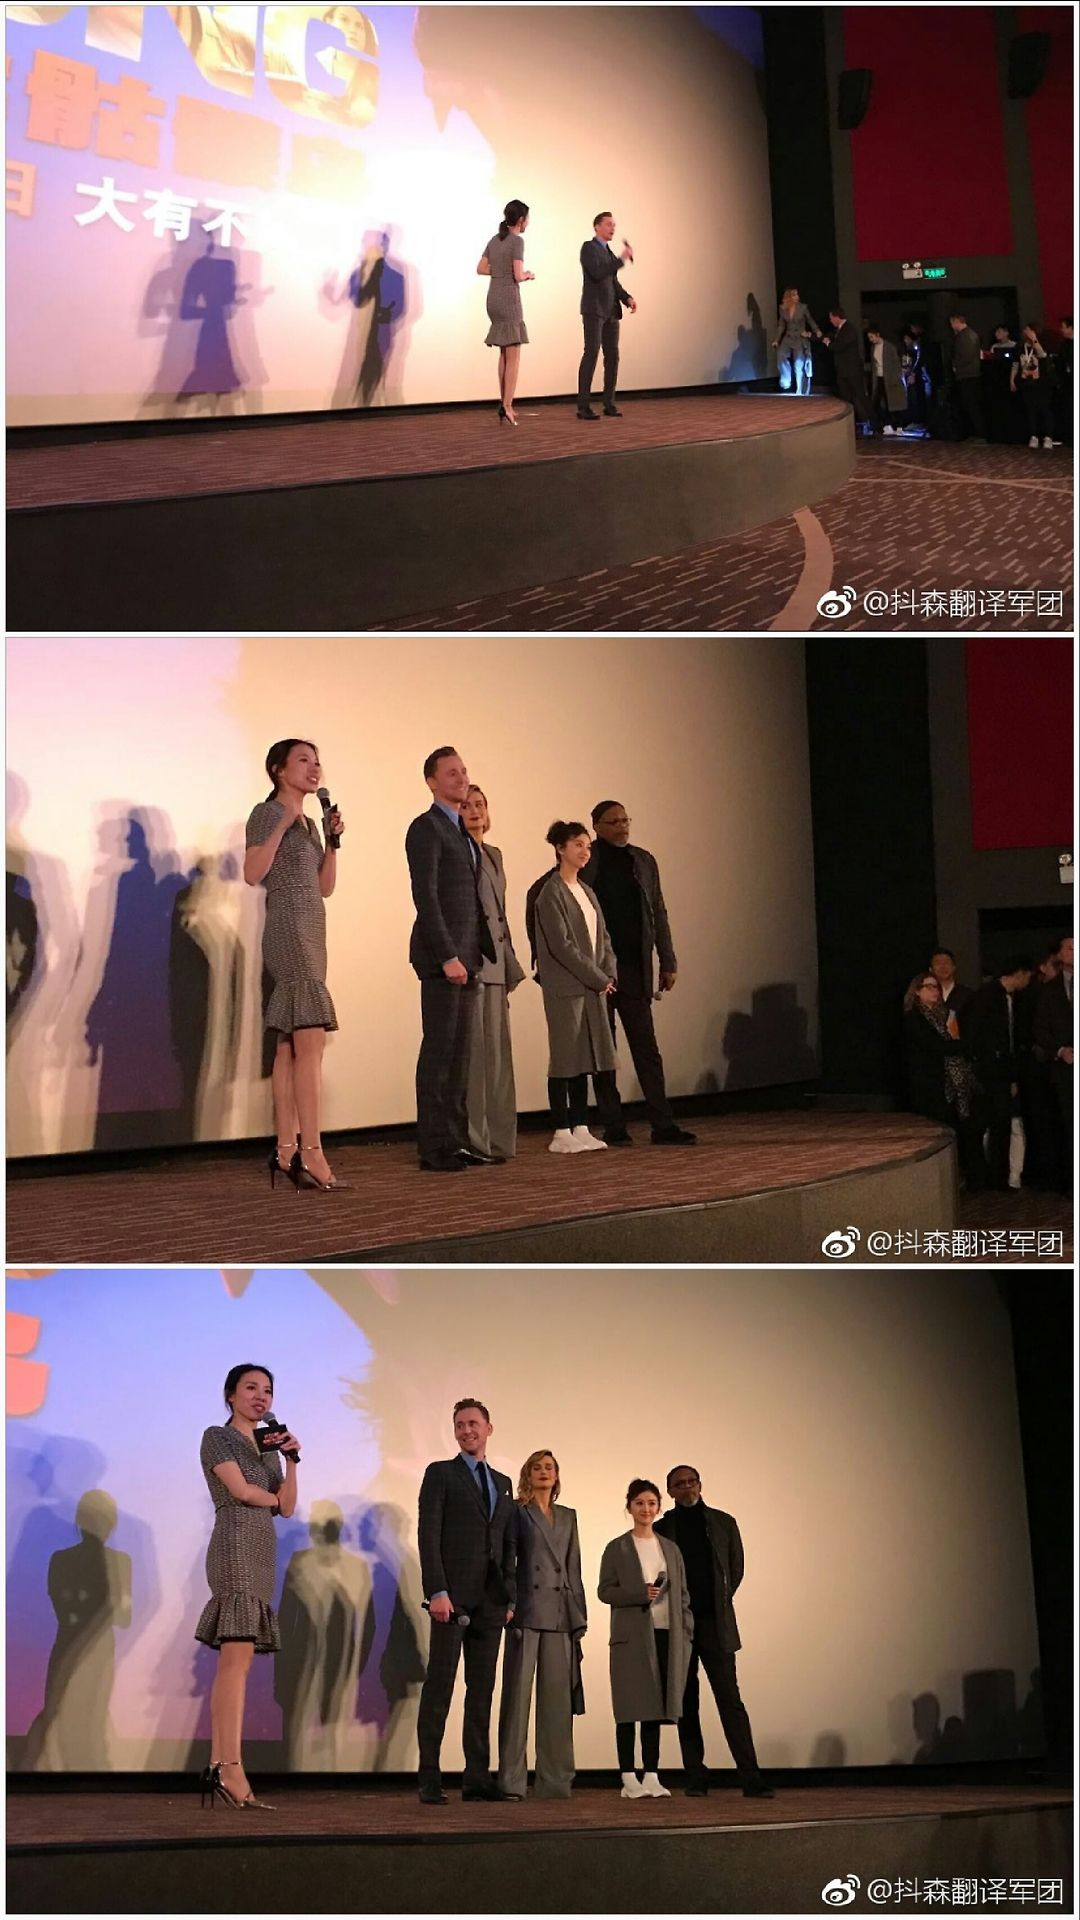 Tom Hiddleston, Brie Larson, Samuel L. Jackson and Jing Tian attend the press conference/premiere of Kong: Skull Island in Beijing, China on March 16 2017 (http://maryxglz.tumblr.com/post/158542441012/lolawashere-tom-hiddleston-brie-larson-samuel )